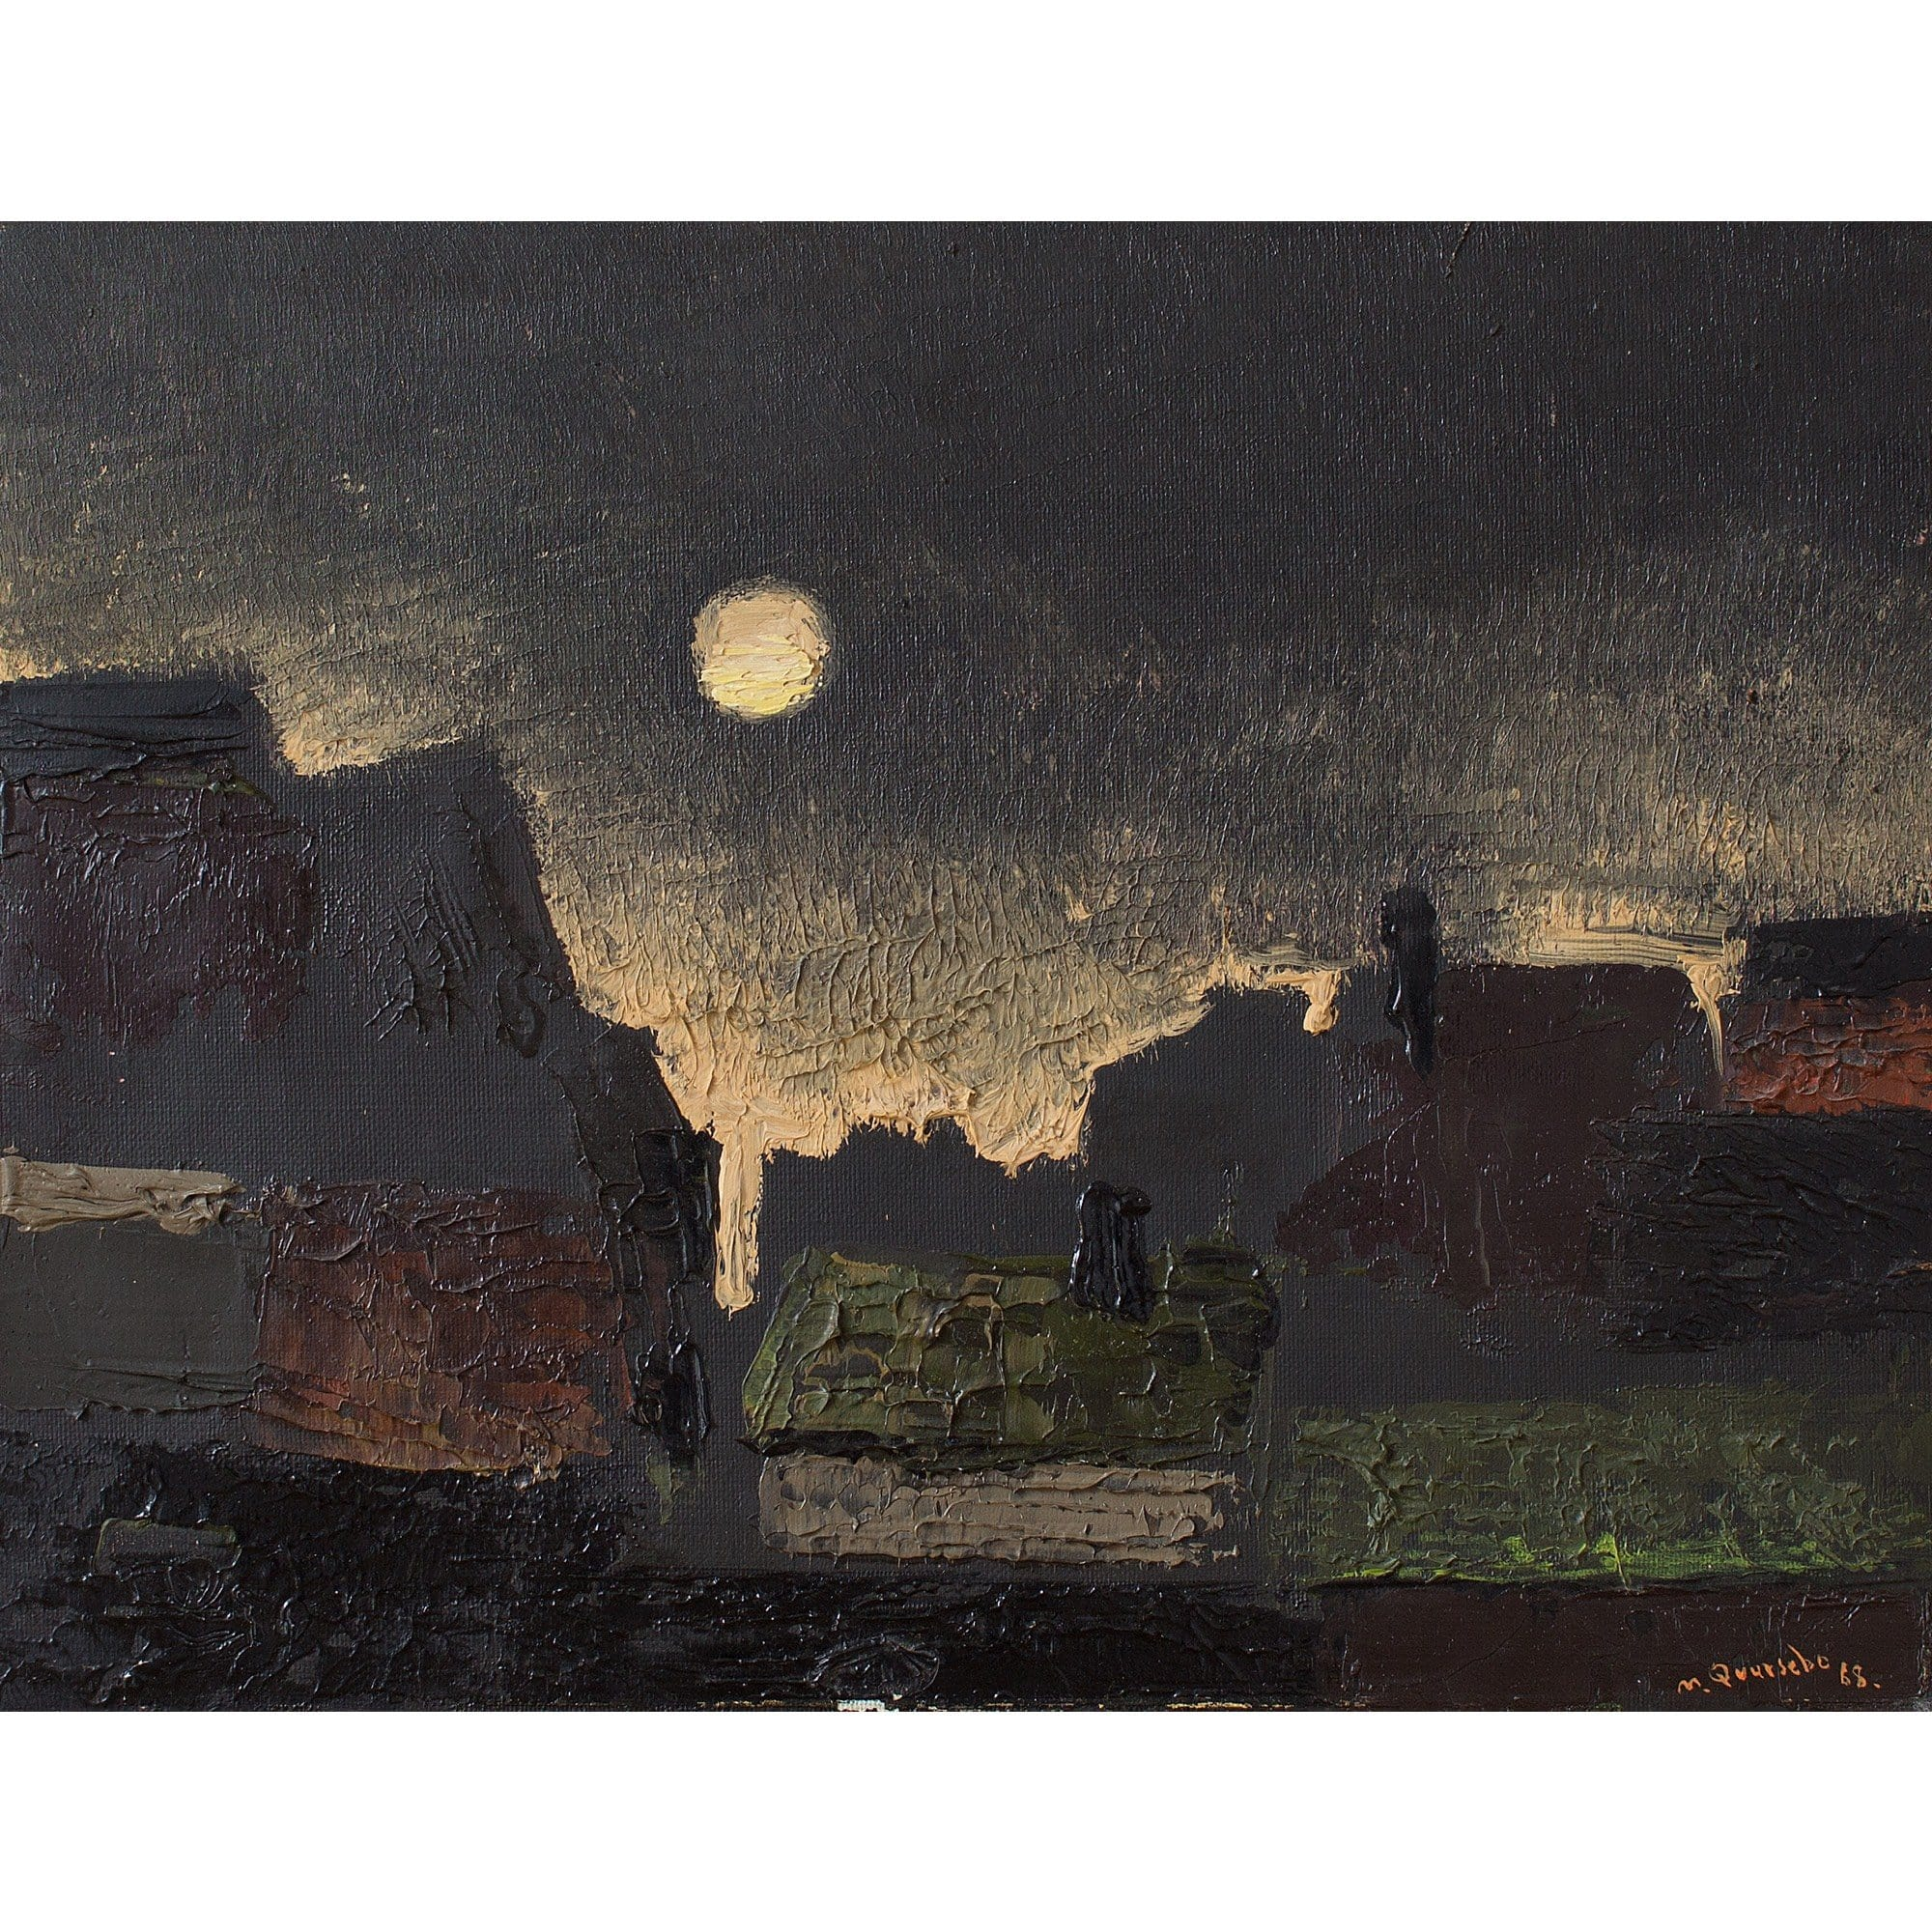 Michael Qvarsebo, Town Under Moonlight